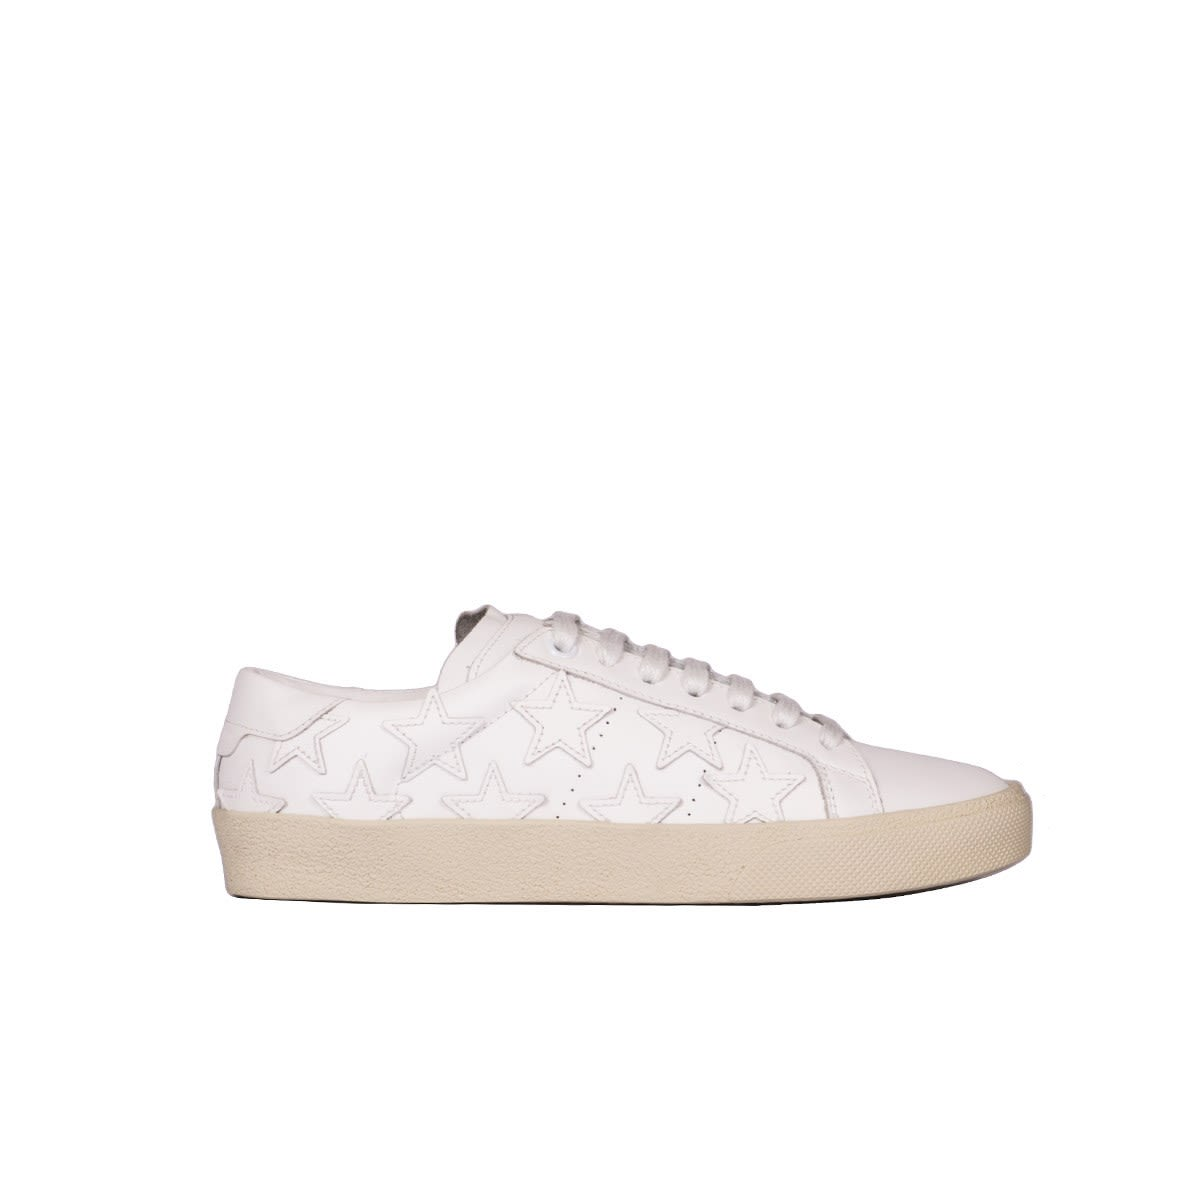 Saint Laurent White Leather Sneakers With Stars